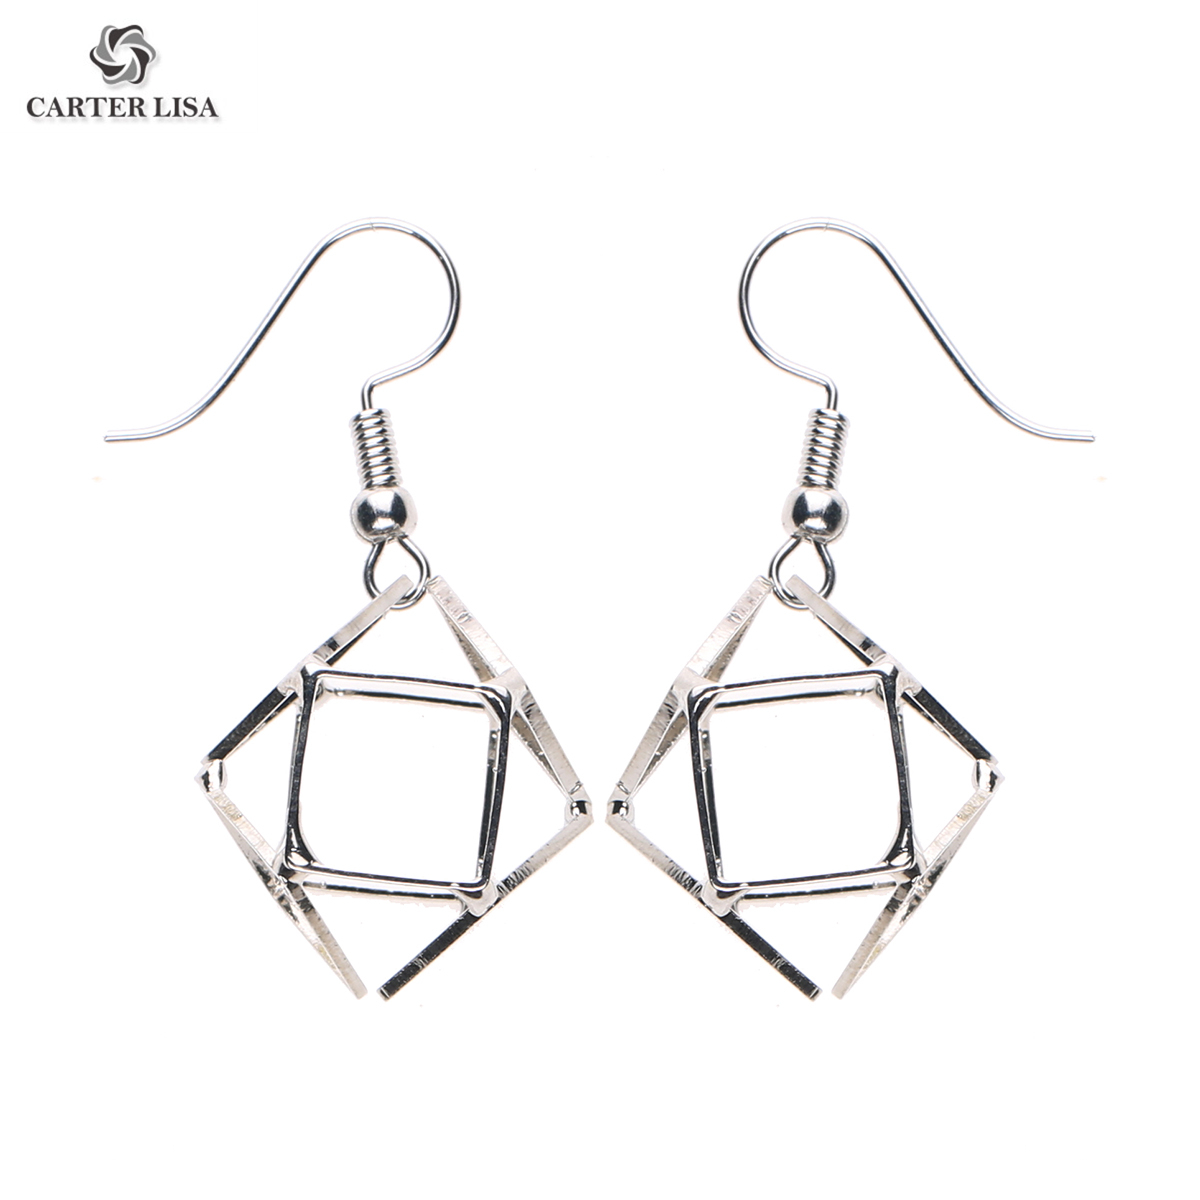 CARTER LISA 2019 New Fashion Unique Lightweight Geometric Hollow Out Plated Cube Earrings For Women Female HDEA-002